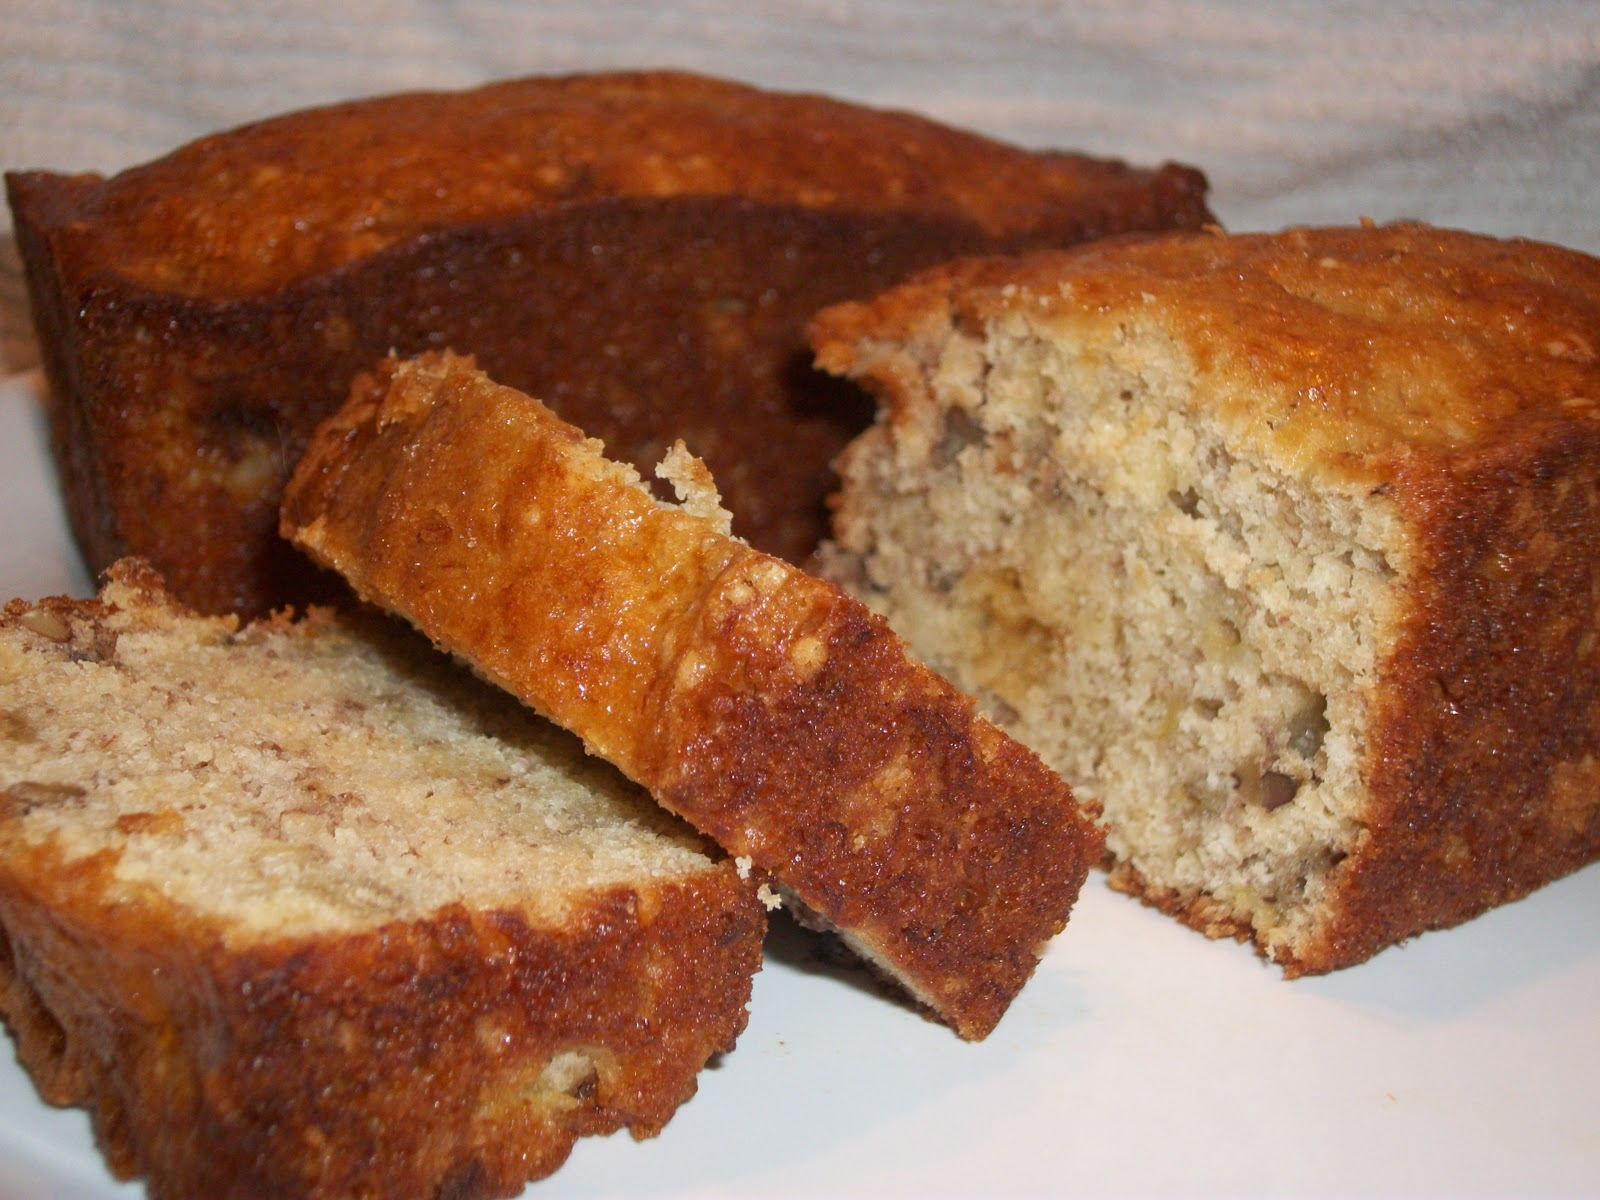 Easy Banana Bread From Yellow Cake Mix